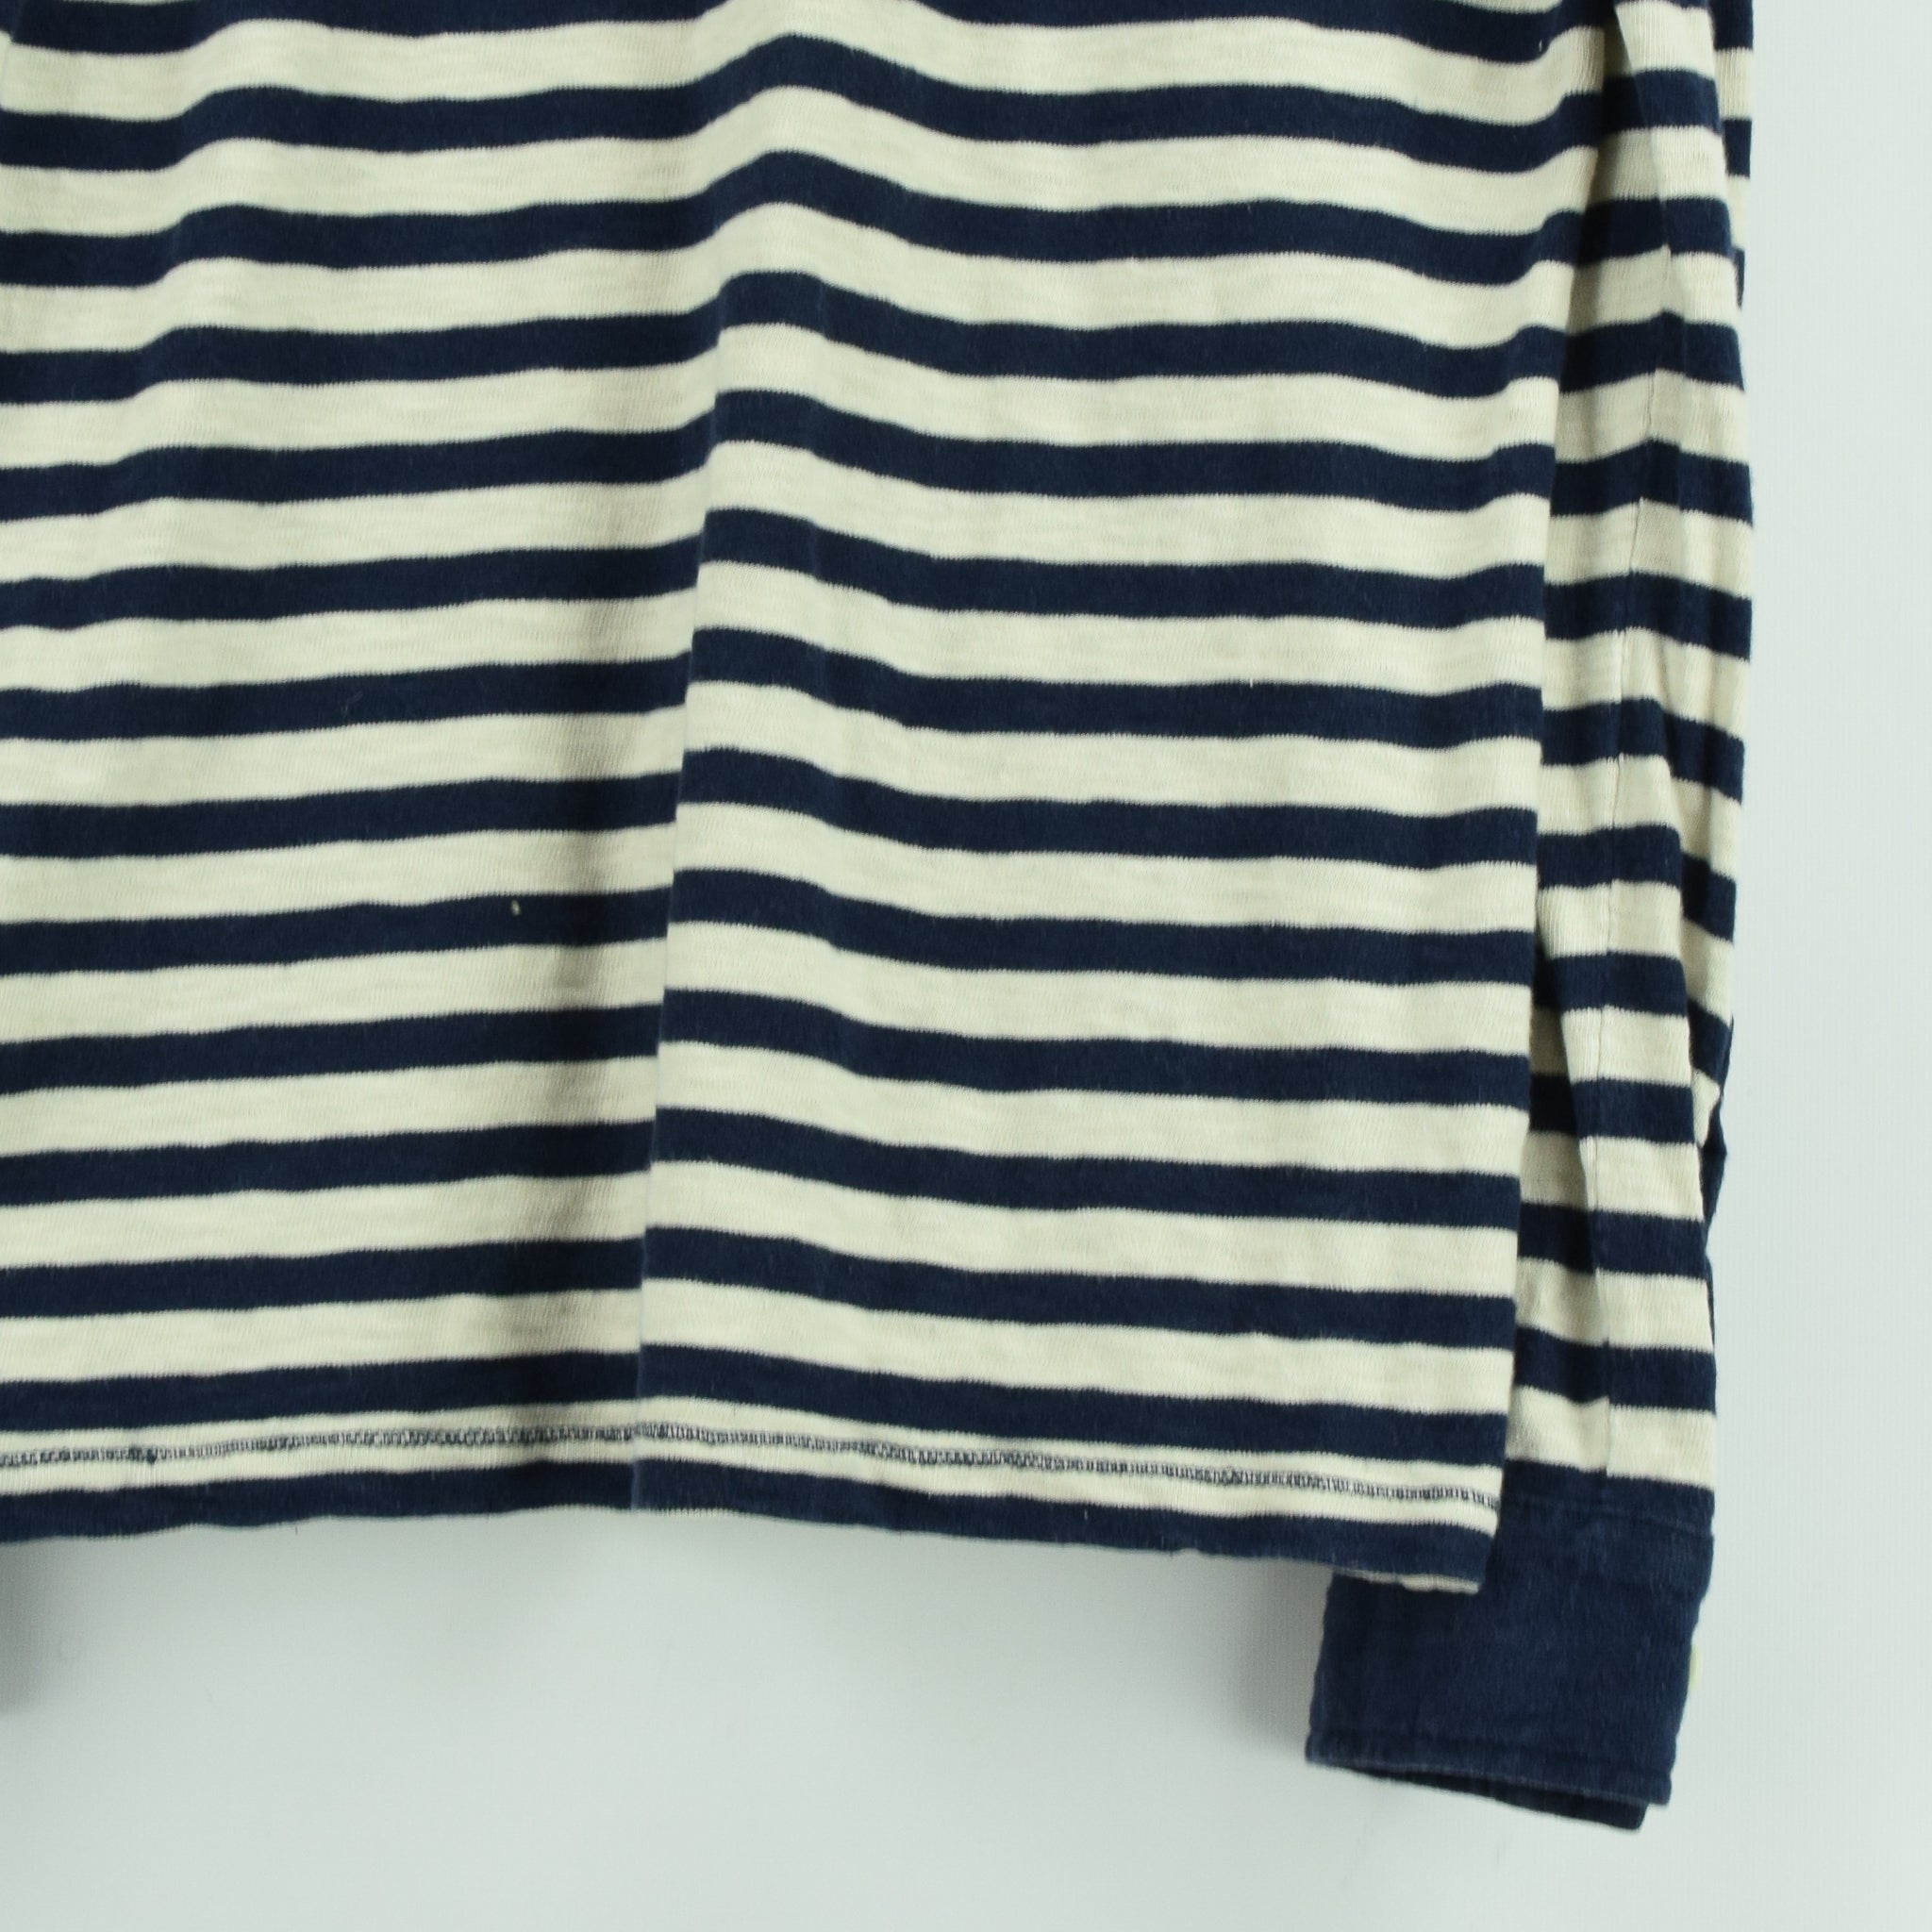 Vintage NN 07 Breton Striped Sailor's Long Sleeved Cotton T-shirt Top S / M back hem